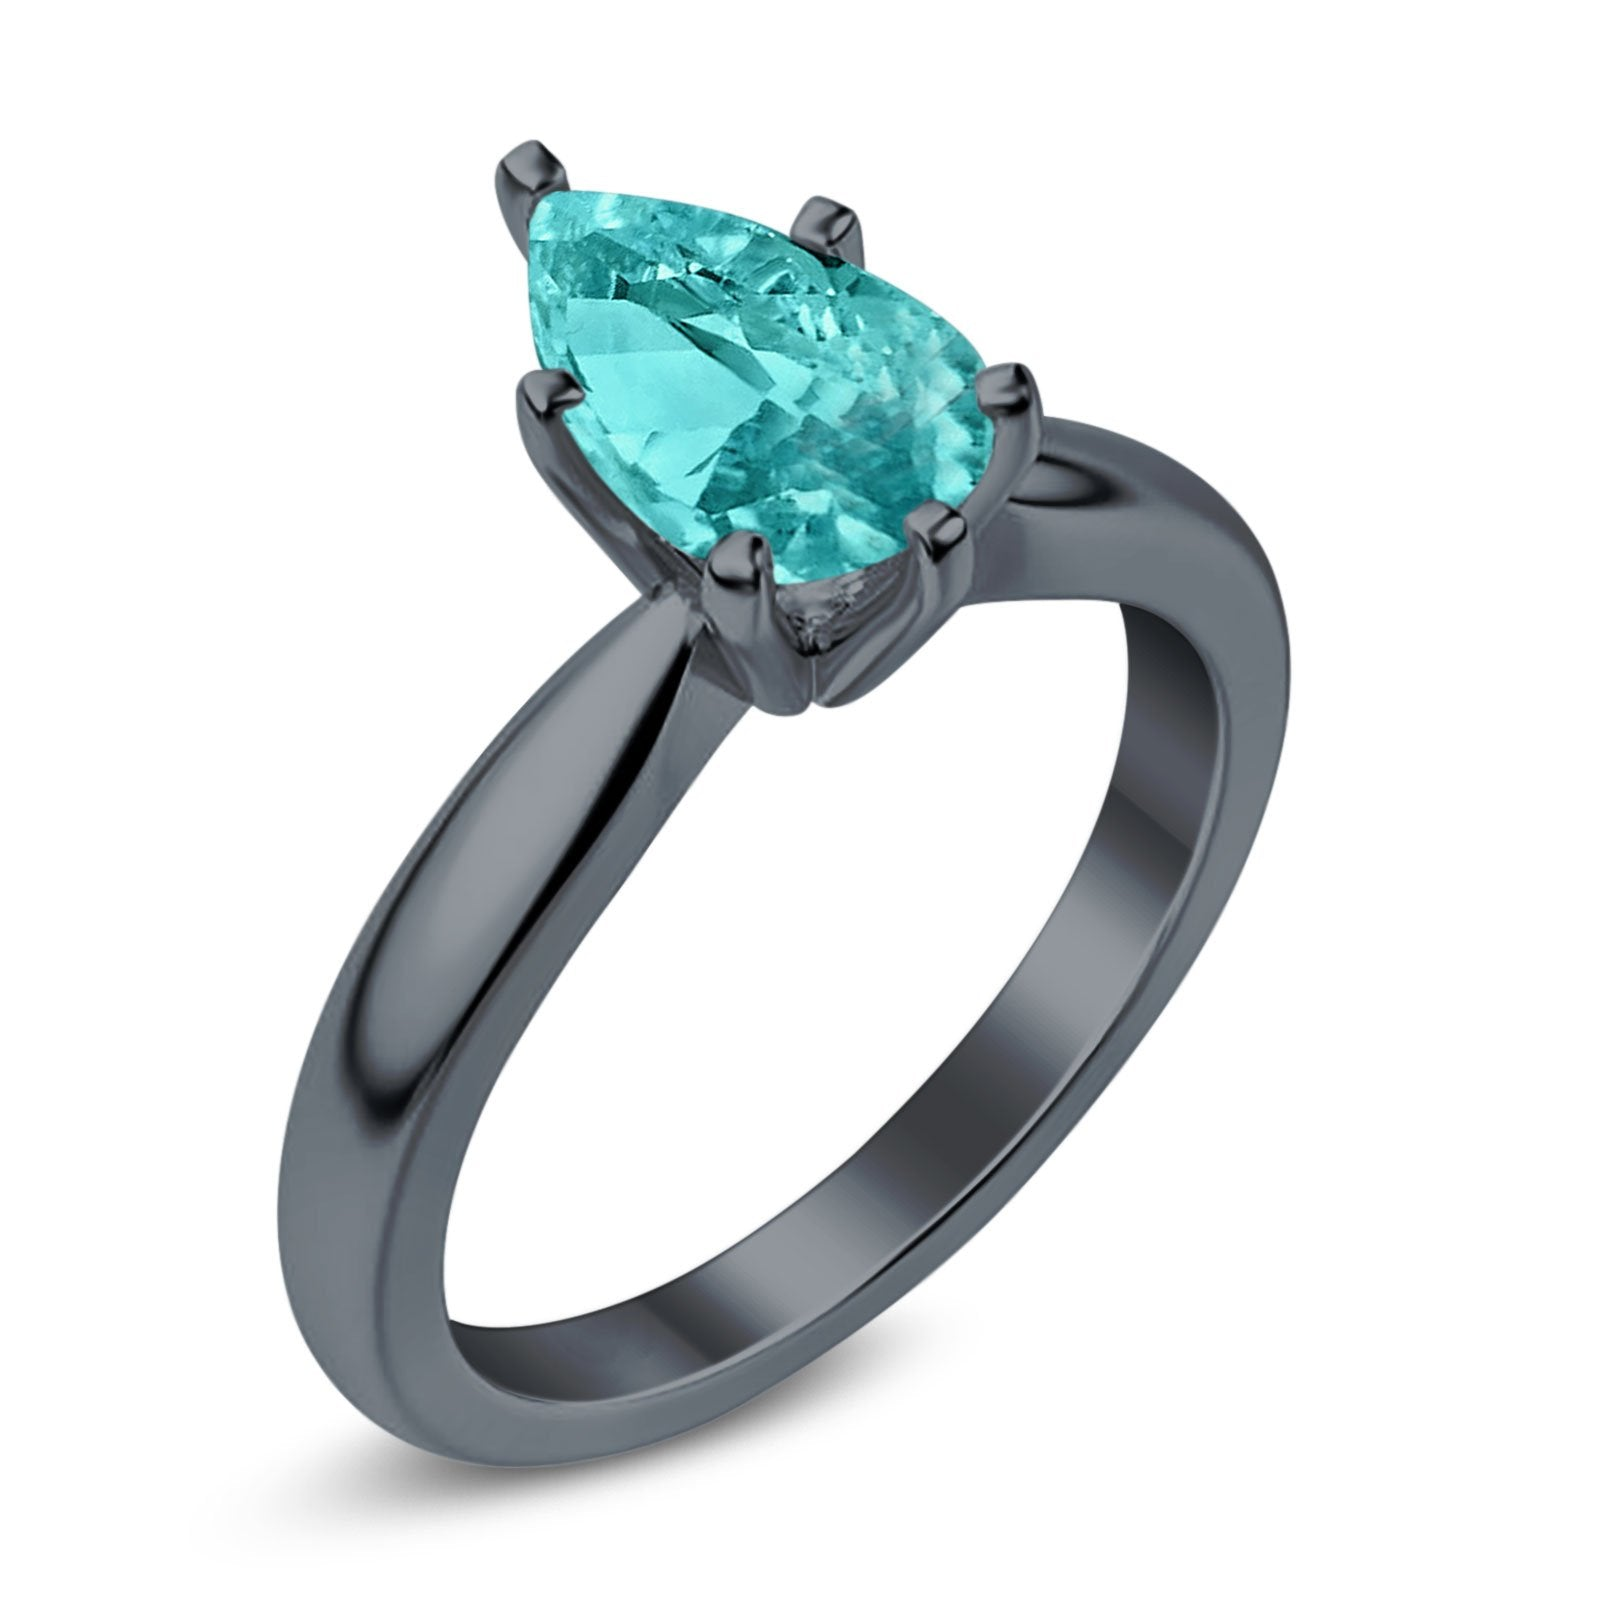 Solitaire Teardrop Black Tone, Simulated Paraiba Tourmaline CZ Wedding Ring 925 Sterling Silver Center Stone-(8mmx6mm)